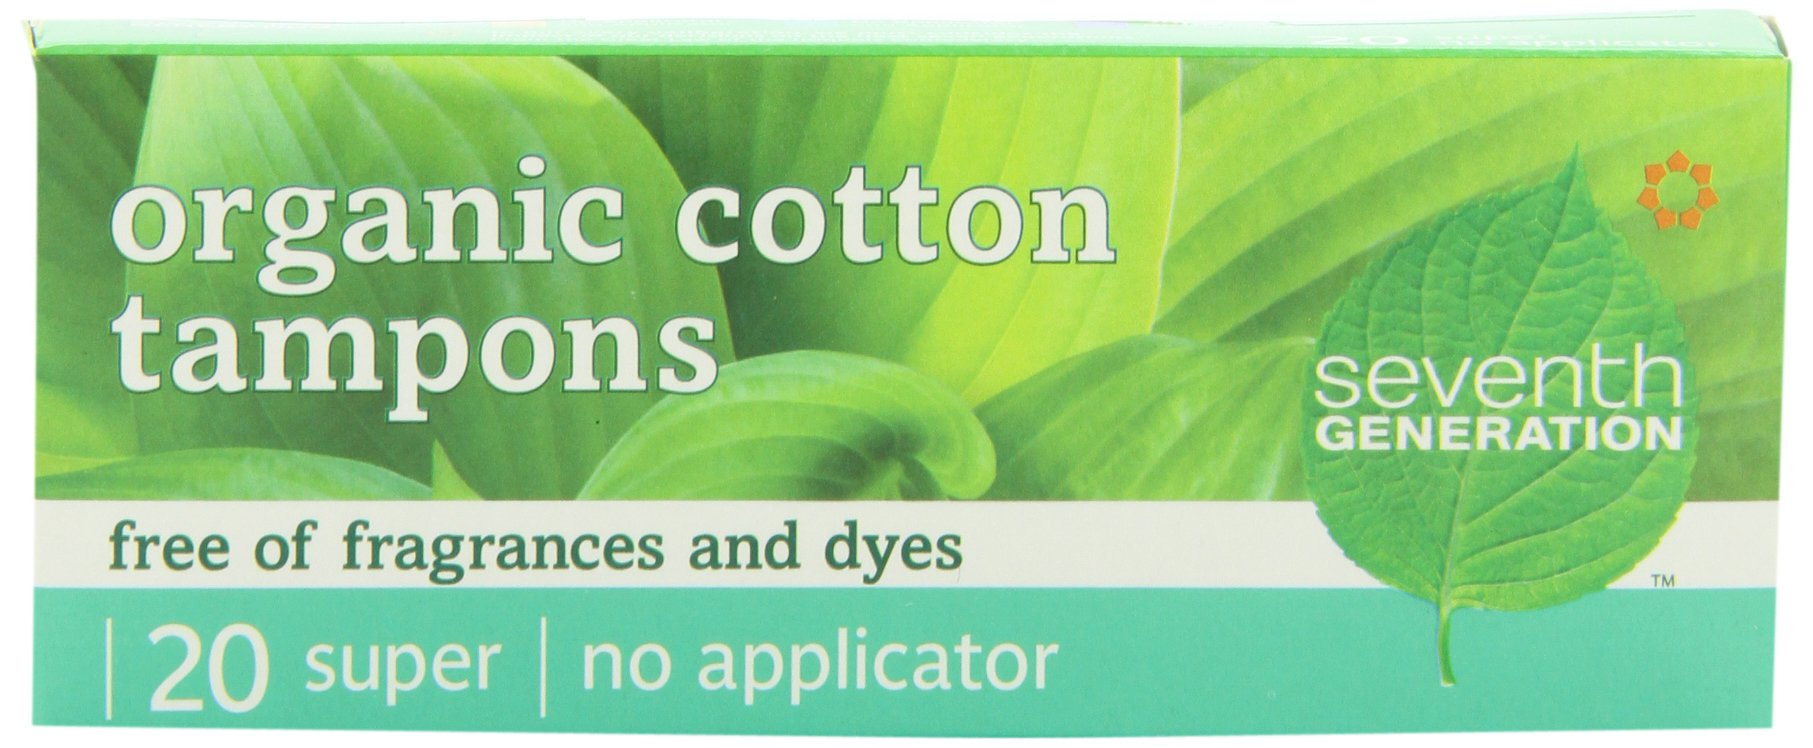 Seventh Generation Chlorine Free Organic Cotton Tampons, Super, non-applicator, 20-count packages (Pack of 12) (240 tampons) by Seventh Generation